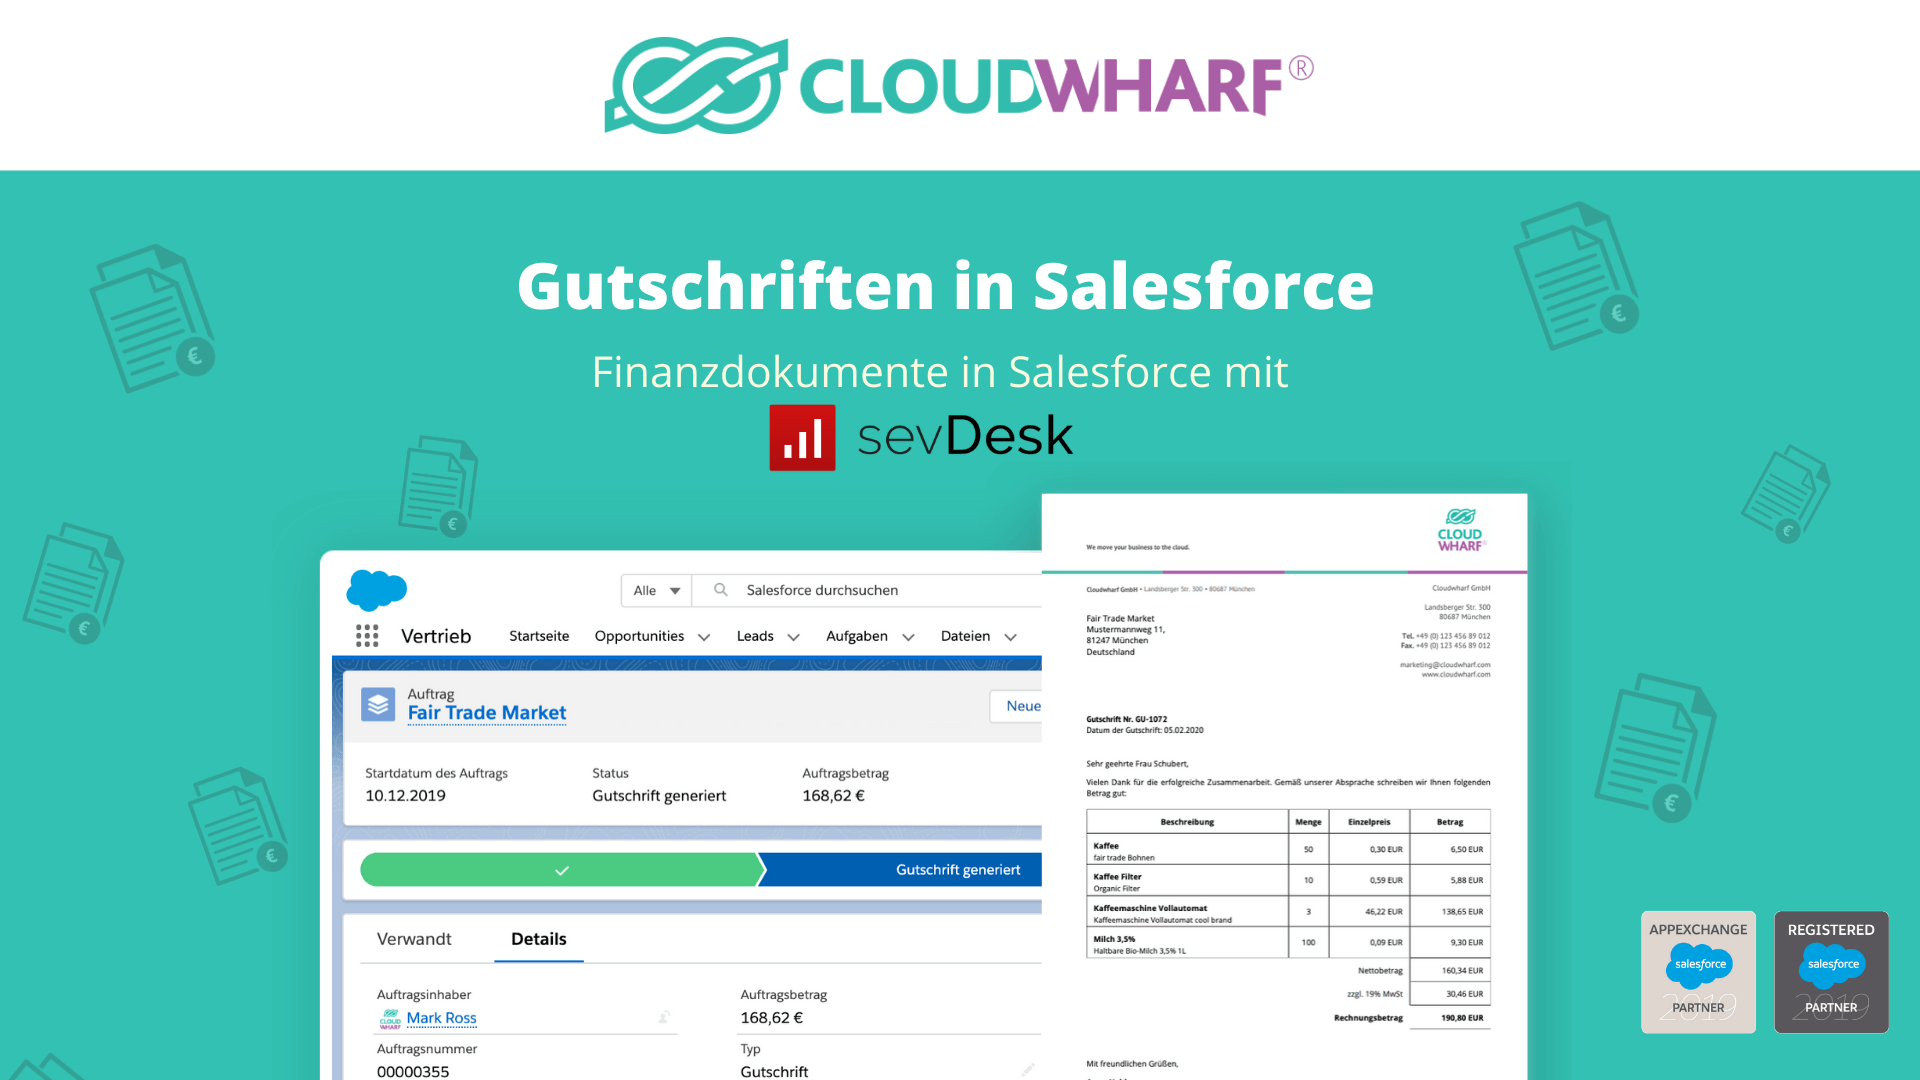 Gutschriften in Salesforce mit sevDesk und Cloudwharf Solutions- Finanzdokumente in Salesforce